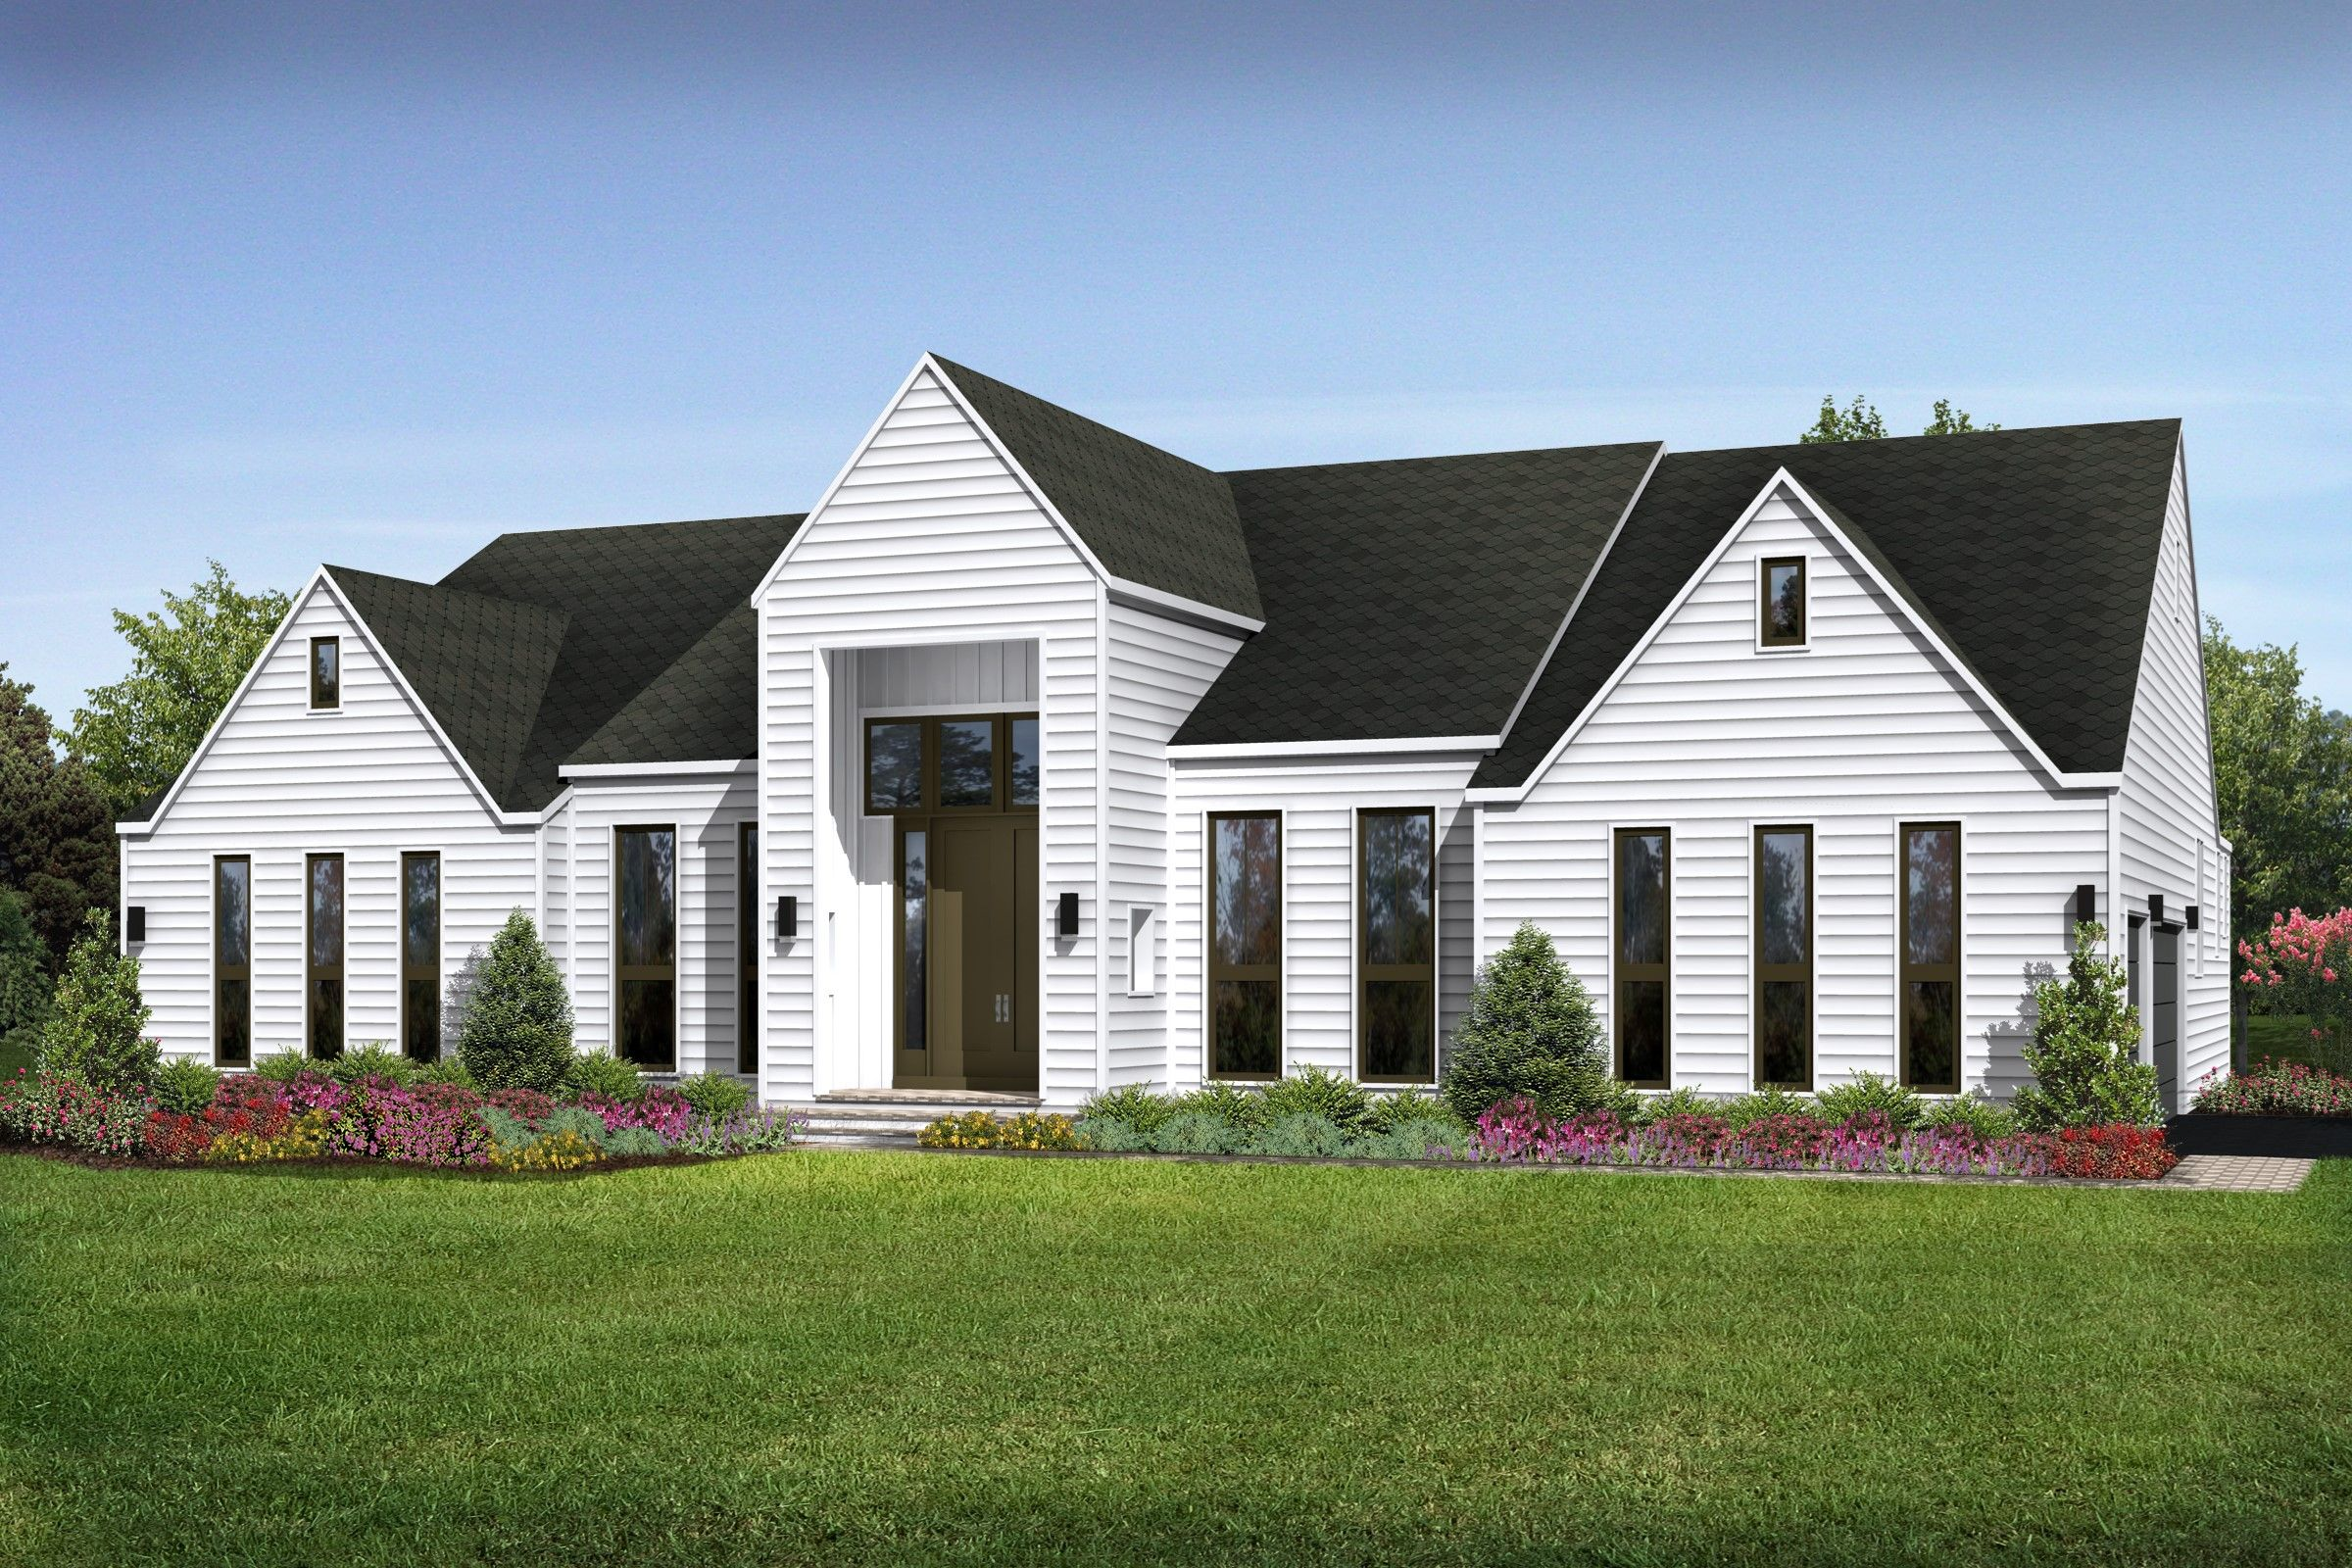 Single Family for Active at Line K At Thompson's Grant - Noorderwind 964 Walker Road Great Falls, Virginia 22066 United States